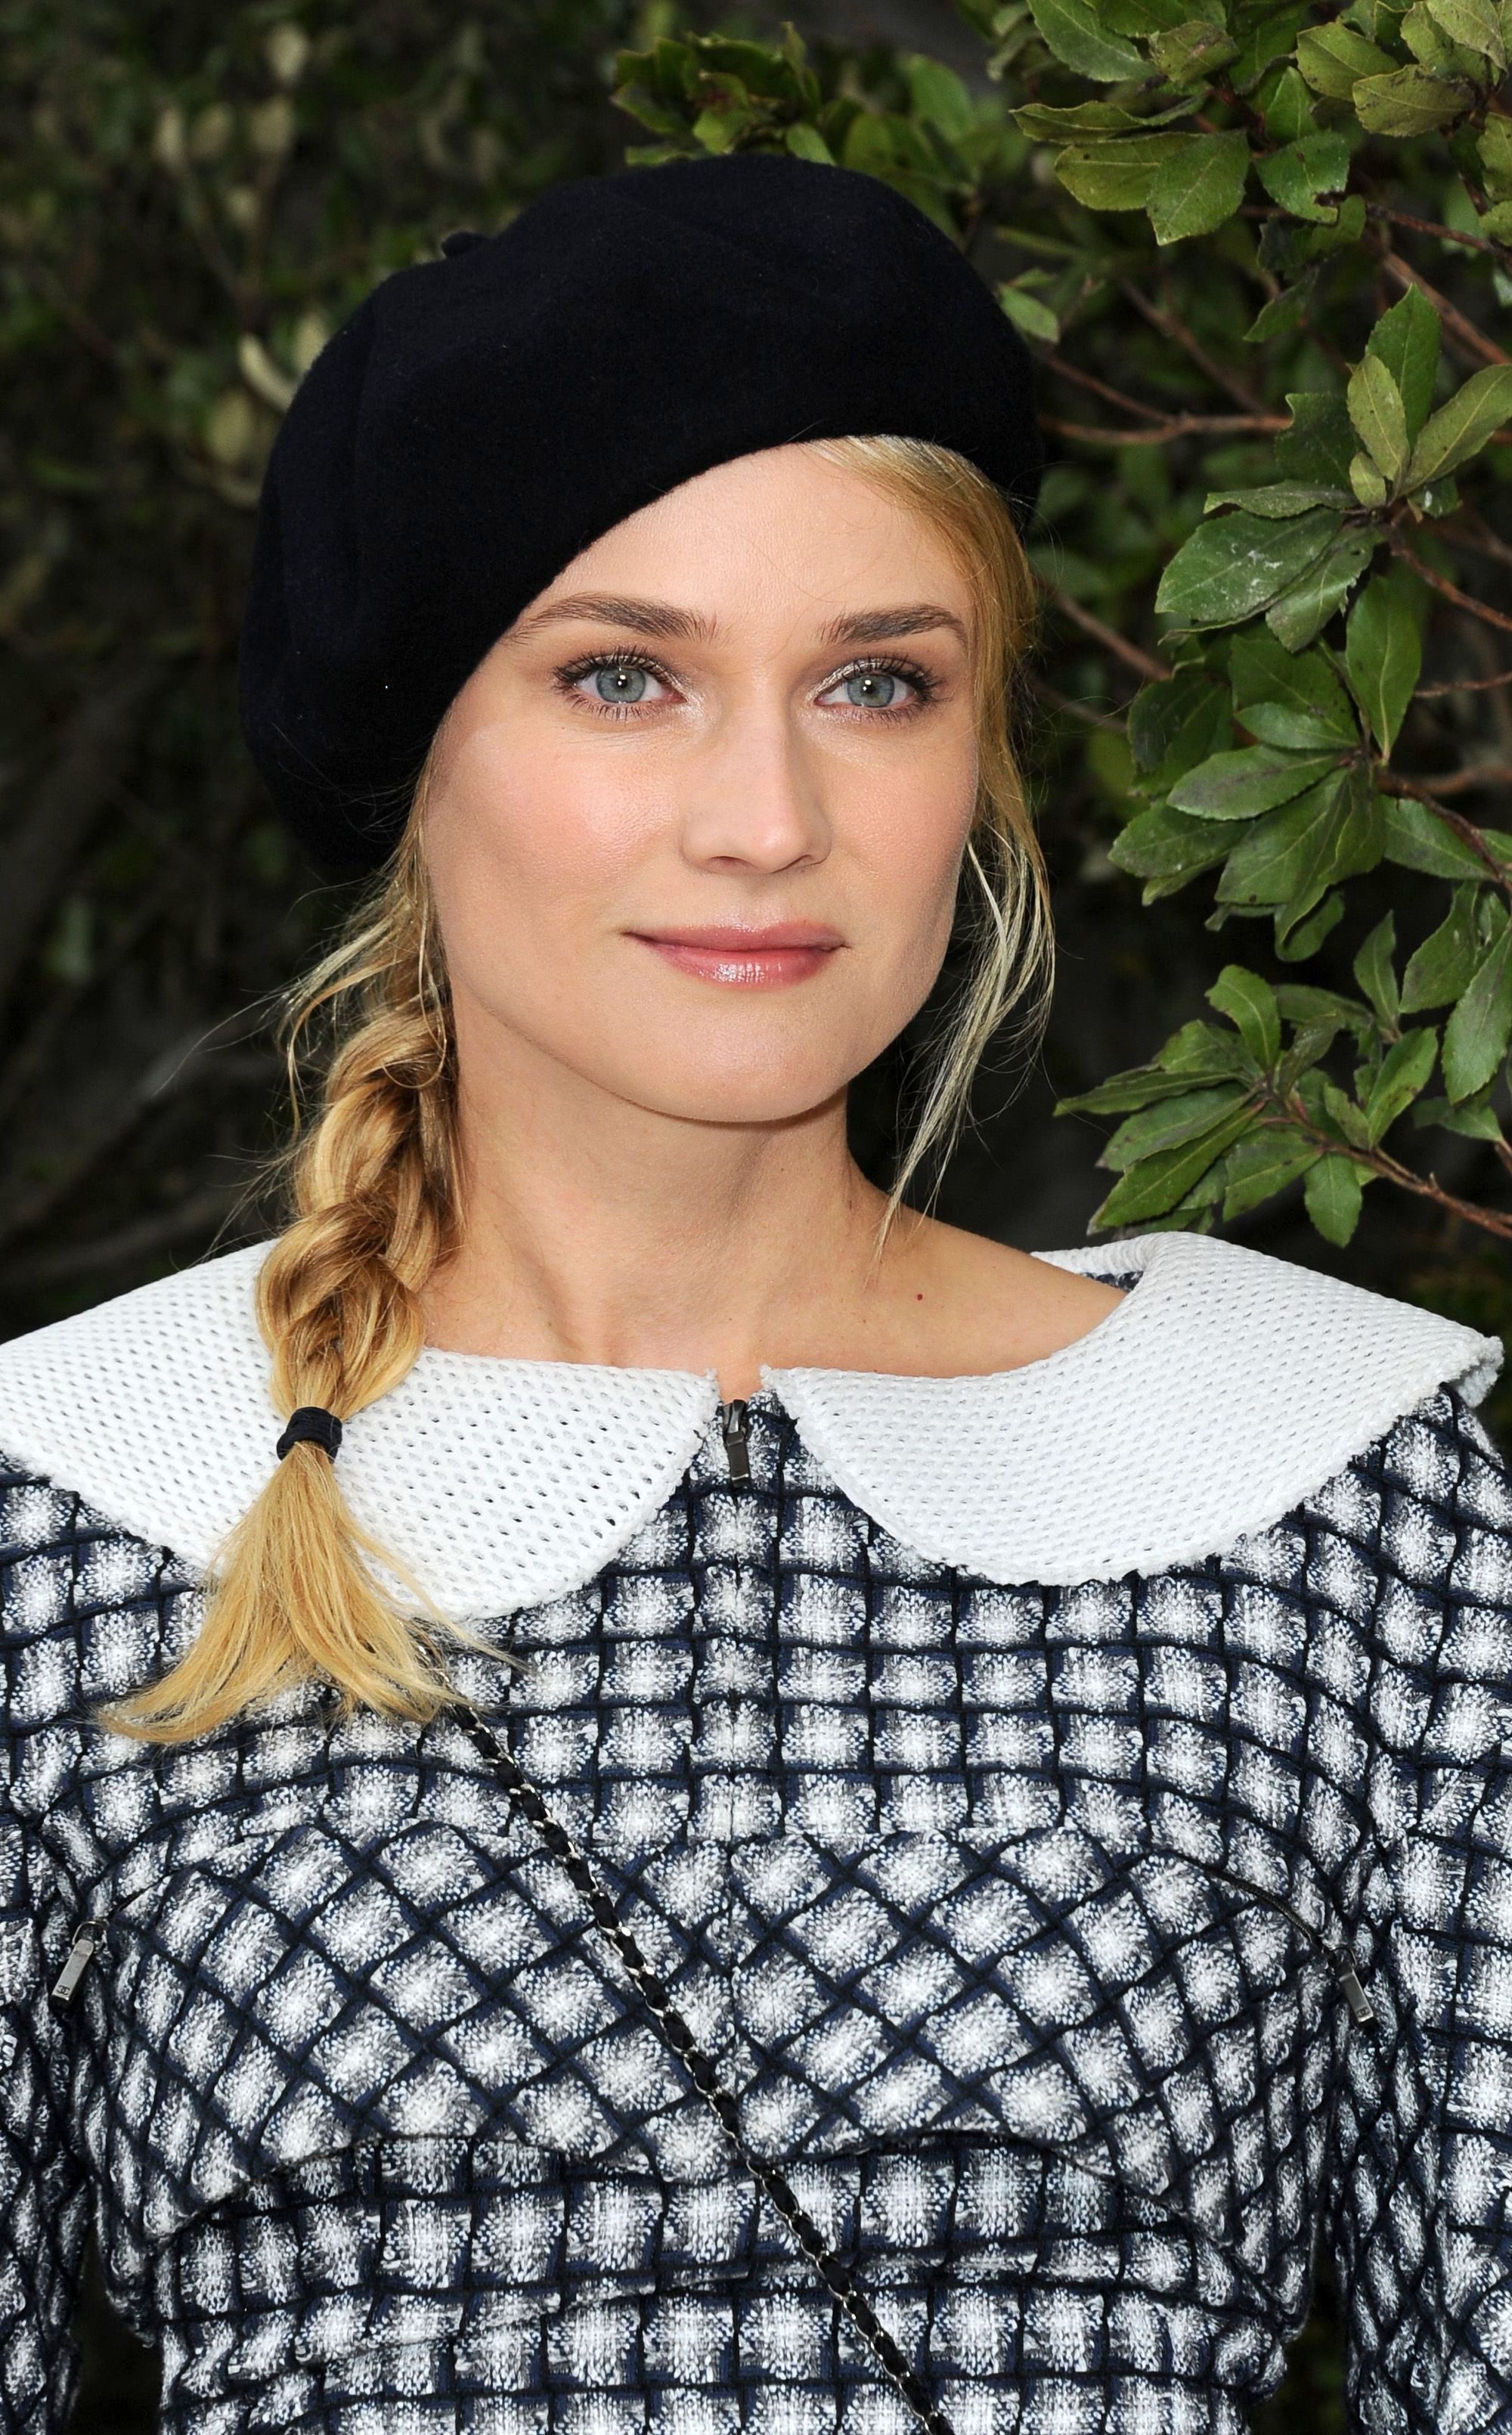 medium short hairstyle: close up shot of diane kruger with side braided hairstyle, wearing beret and gingham dress